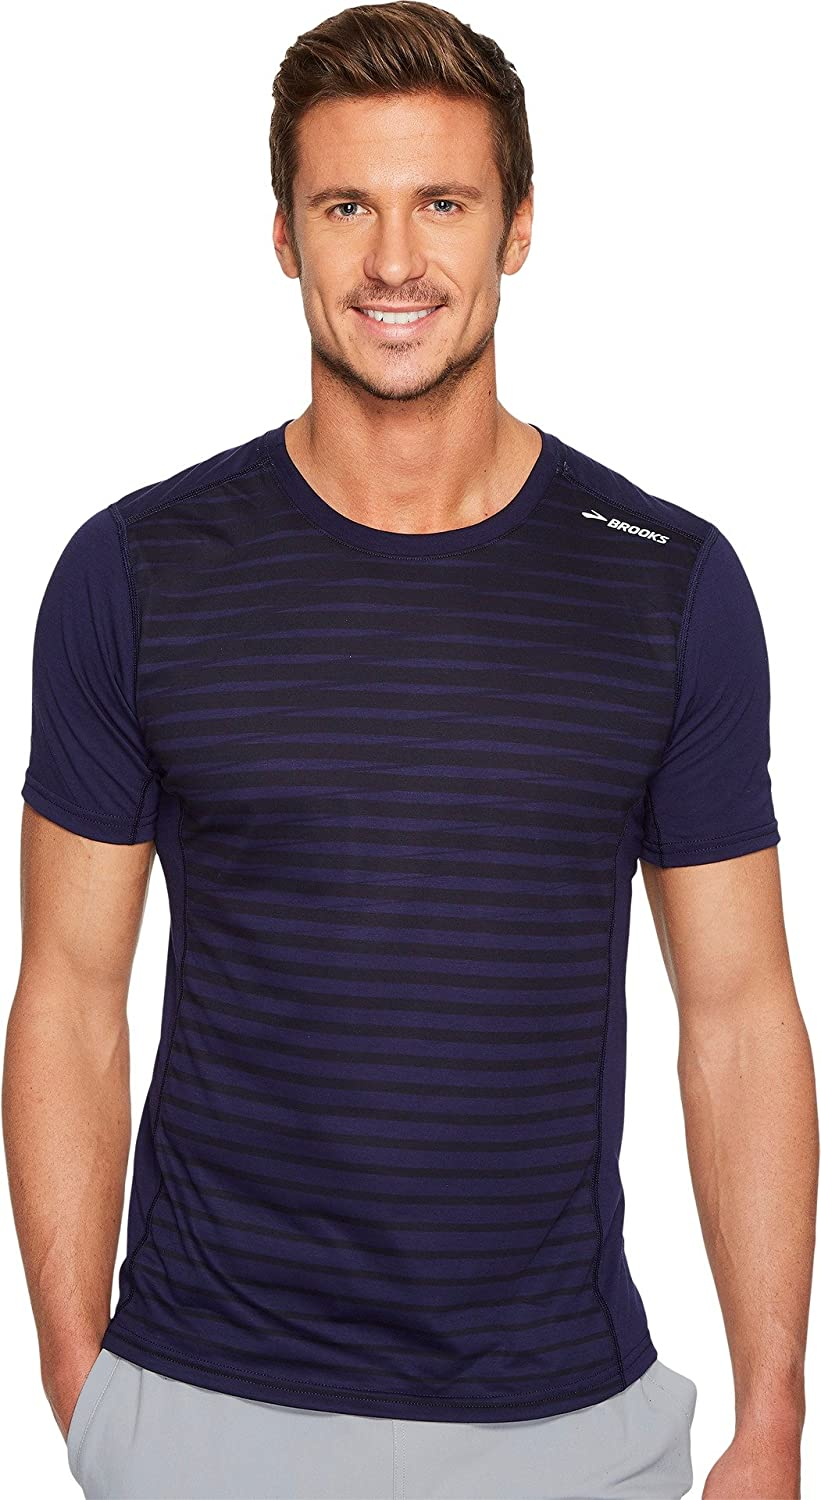 85f139d20 Top 10 wholesale Brooks Shirts - Chinabrands.com